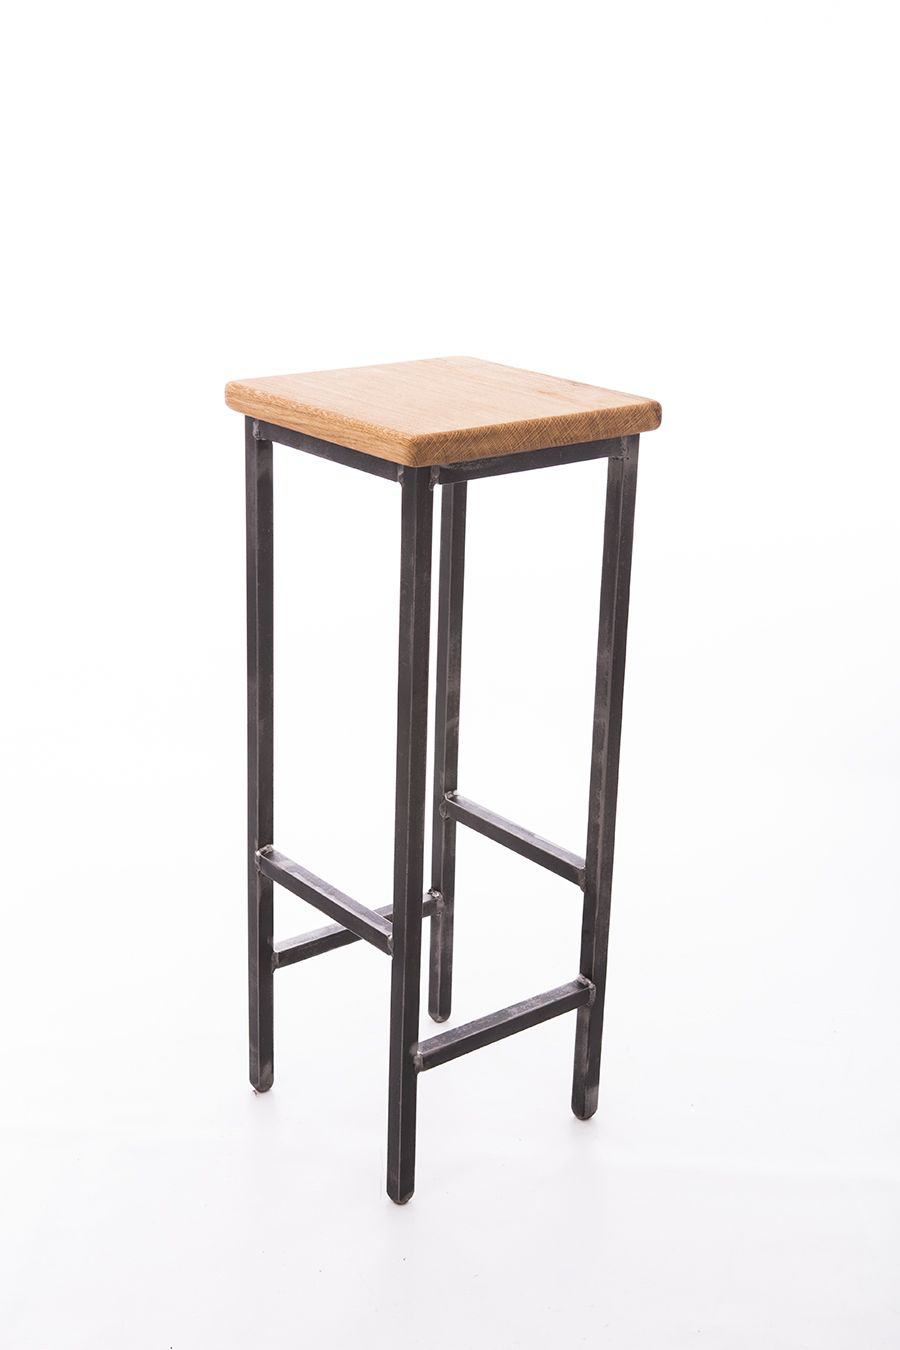 Bar Stool Industrial Style Made With Steel Square Tube